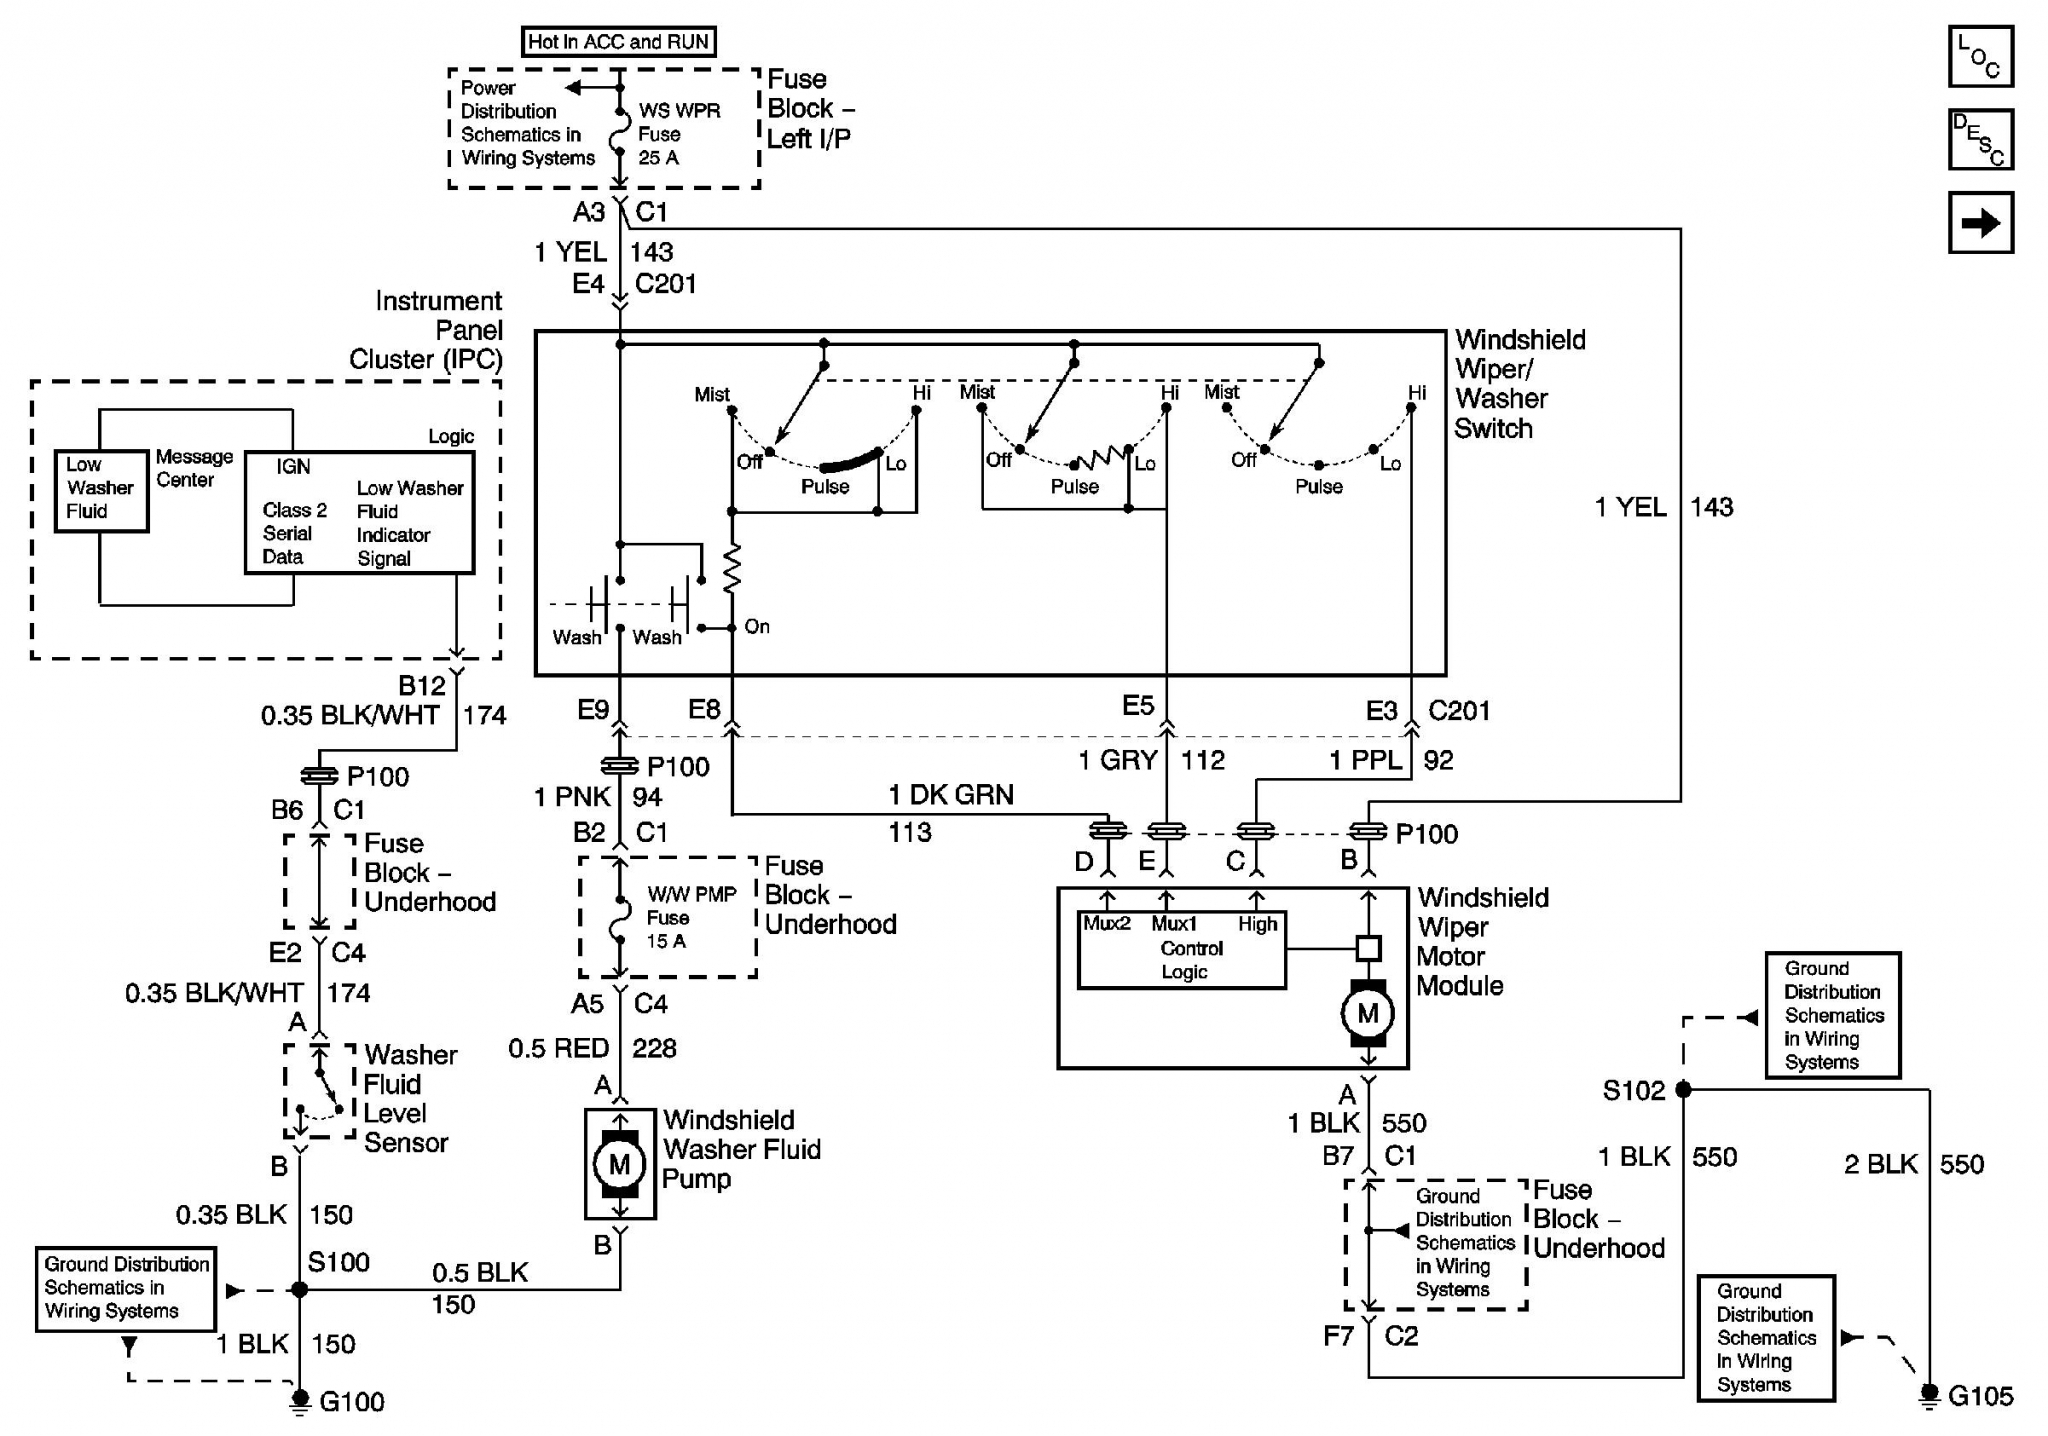 66 Gm Wiper Switch Wiring Diagram